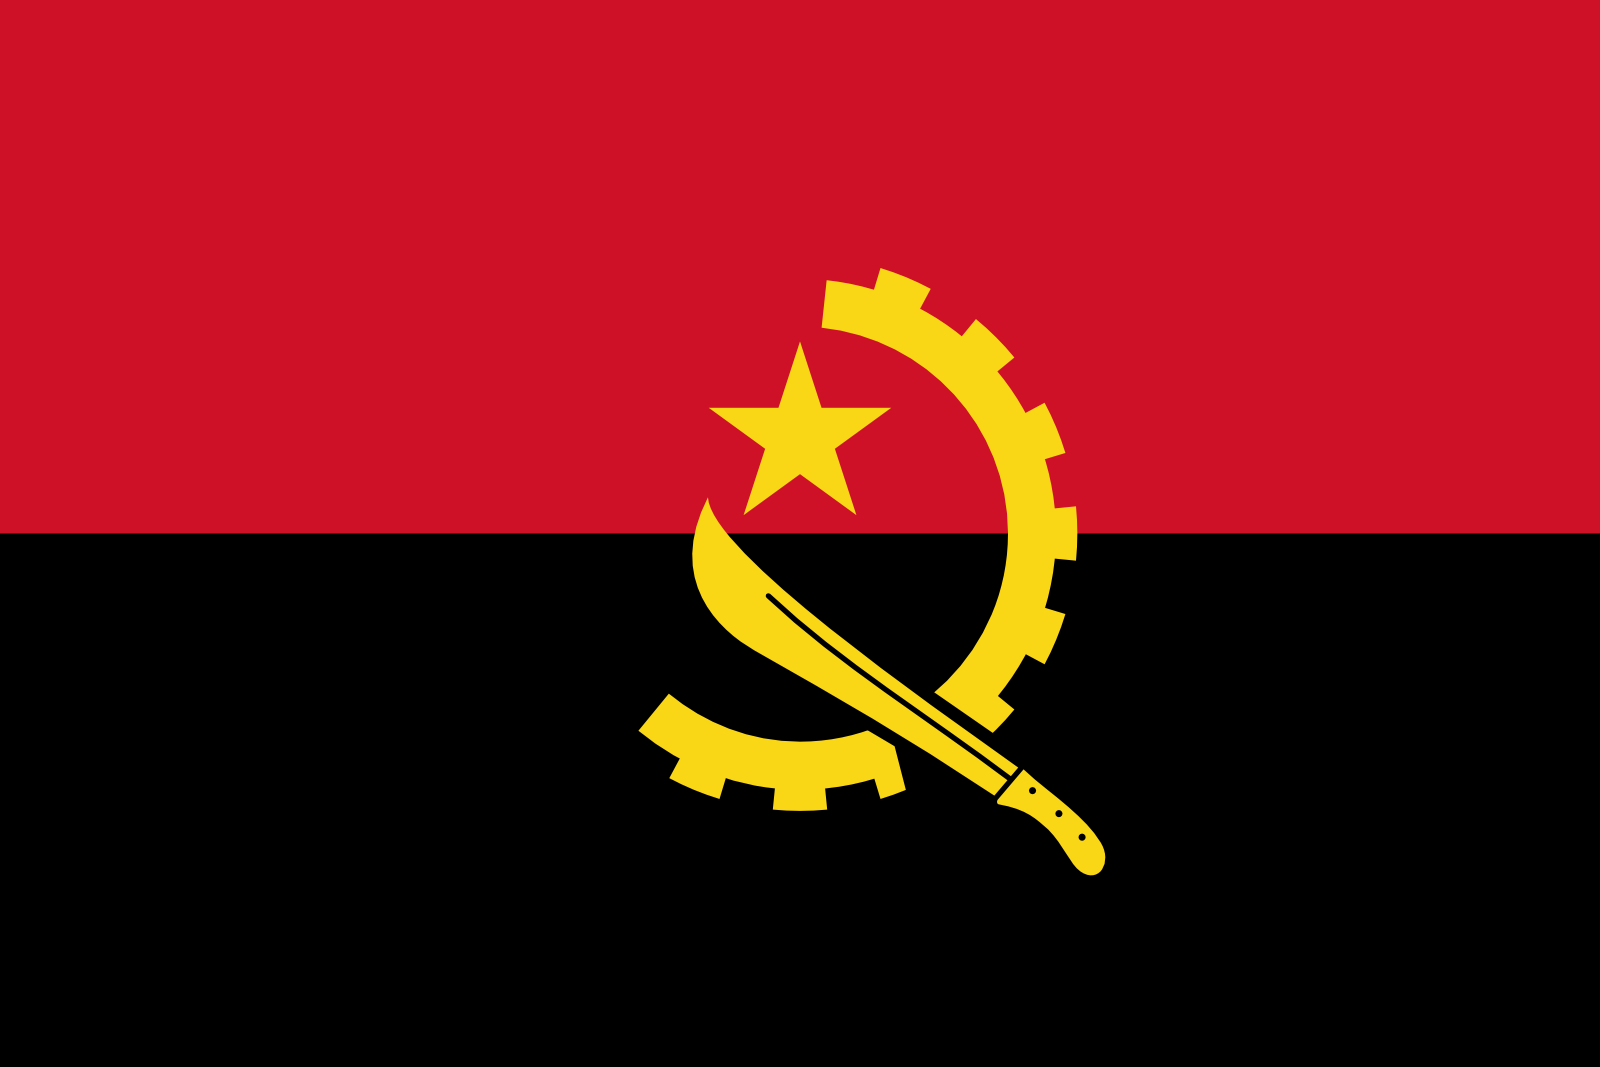 ENGLISH HIGH COURT ORDERS INQUIRY INTO DAMAGES CAUSED BY THE ANGOLAN SOVEREIGN WEALTH FUND AGAINST QUANTUM GLOBAL